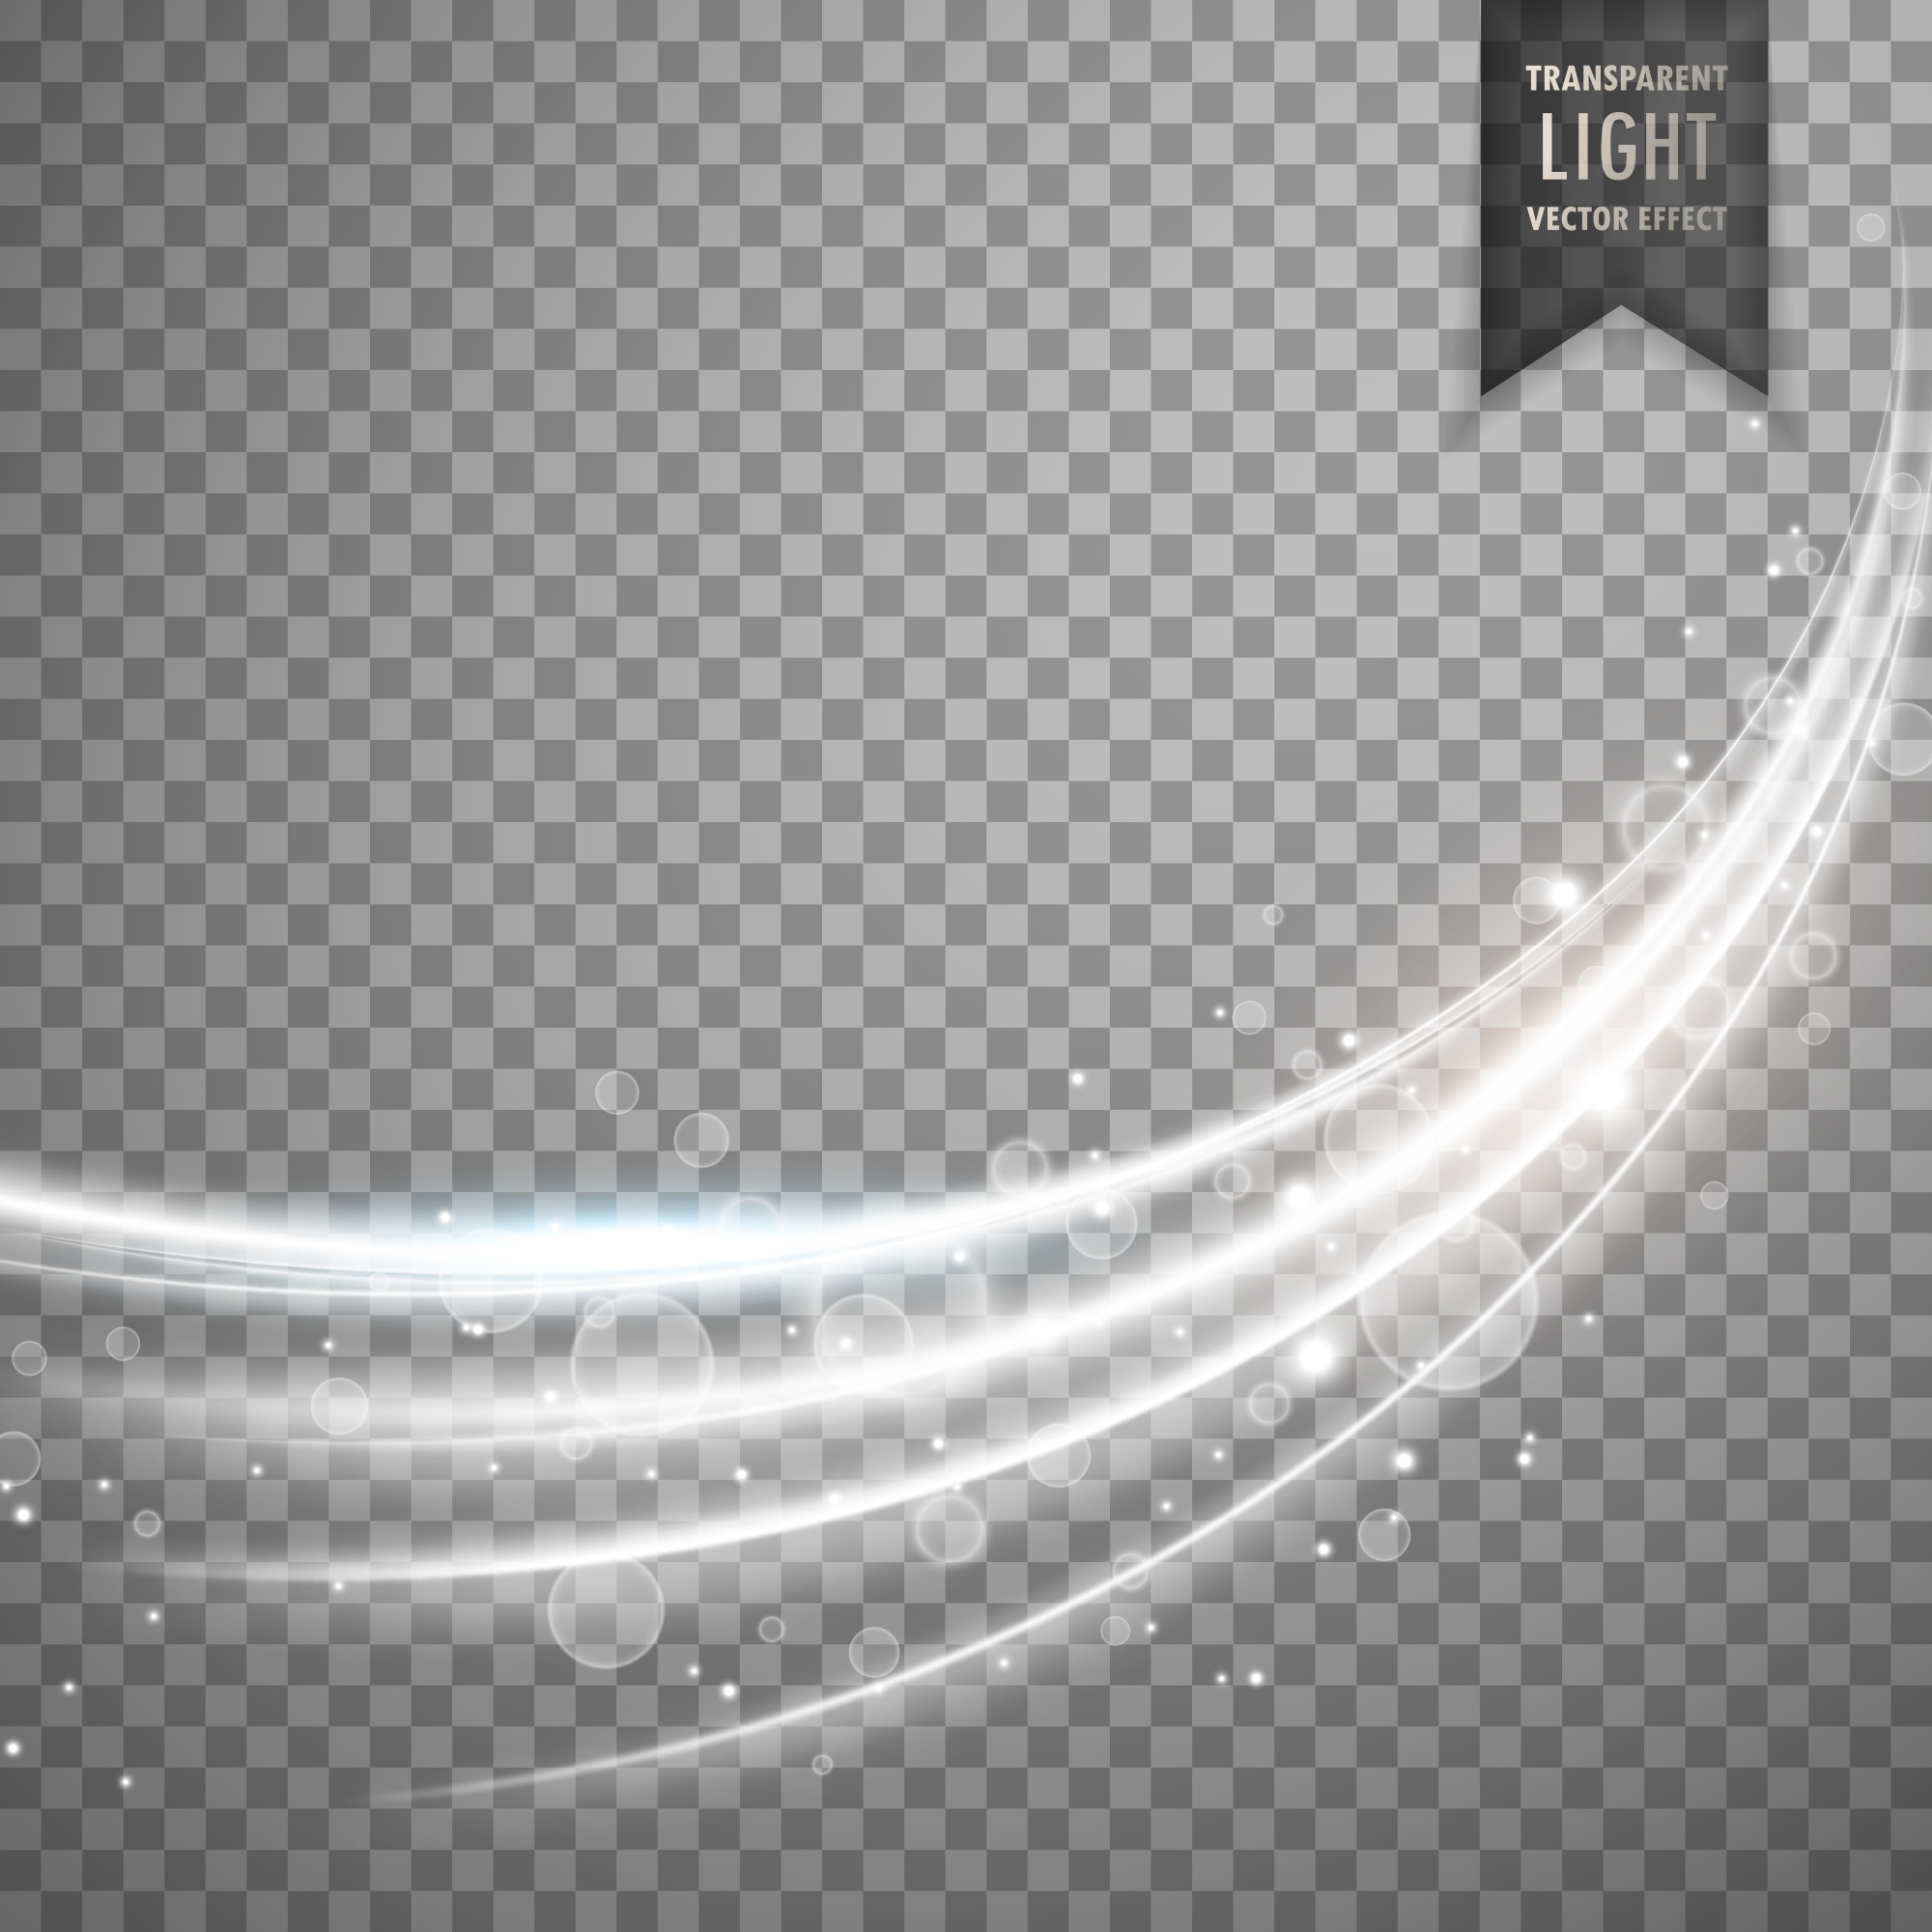 Transparent light effect with curve trail and wavy shape